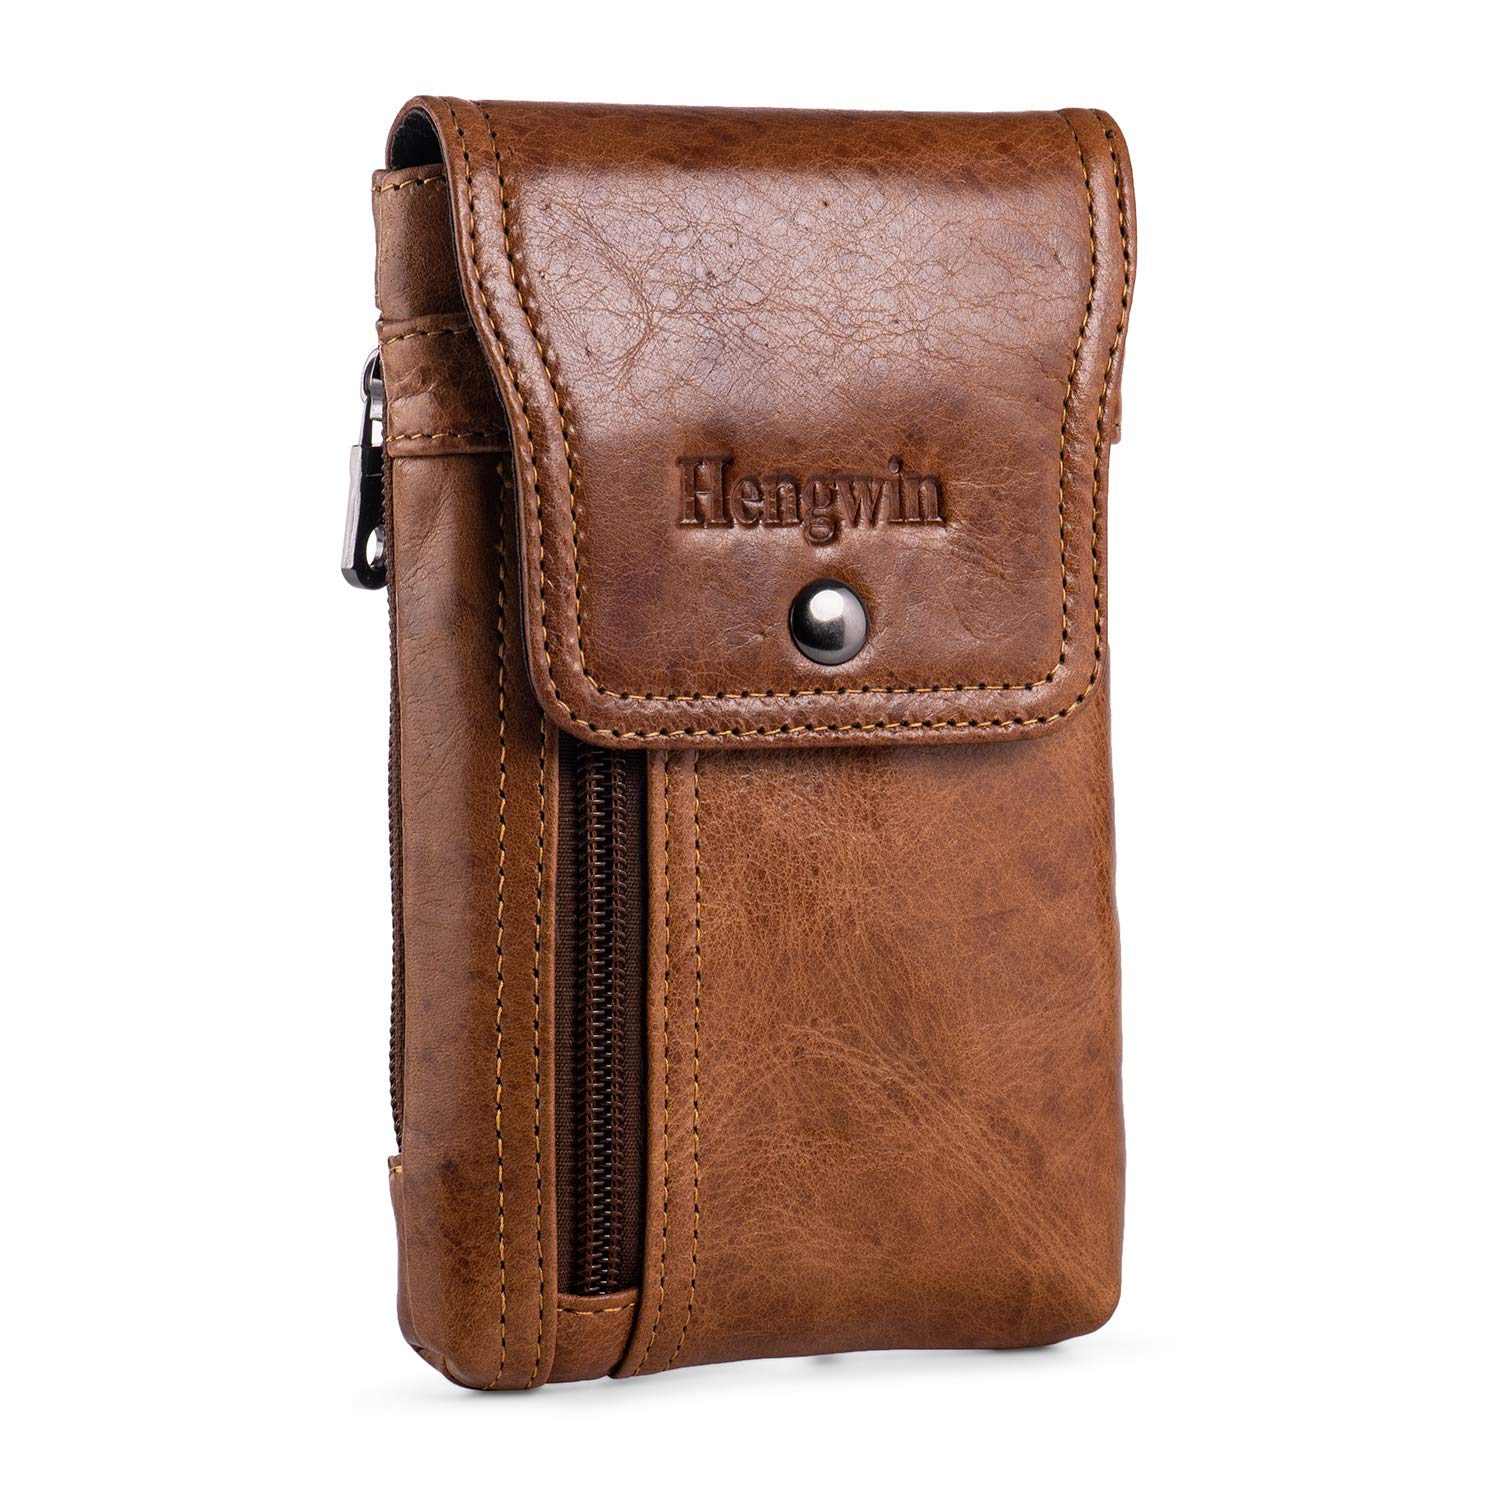 Hengwin Iphone 11 Pro Max Holster Case With Belt Clip Genuine Leather Belt Pouch Iphone Xs Max Xr Belt Case Phone Belt Holder For Iphone 7 Plus 8 Plus 6s Plus Fits